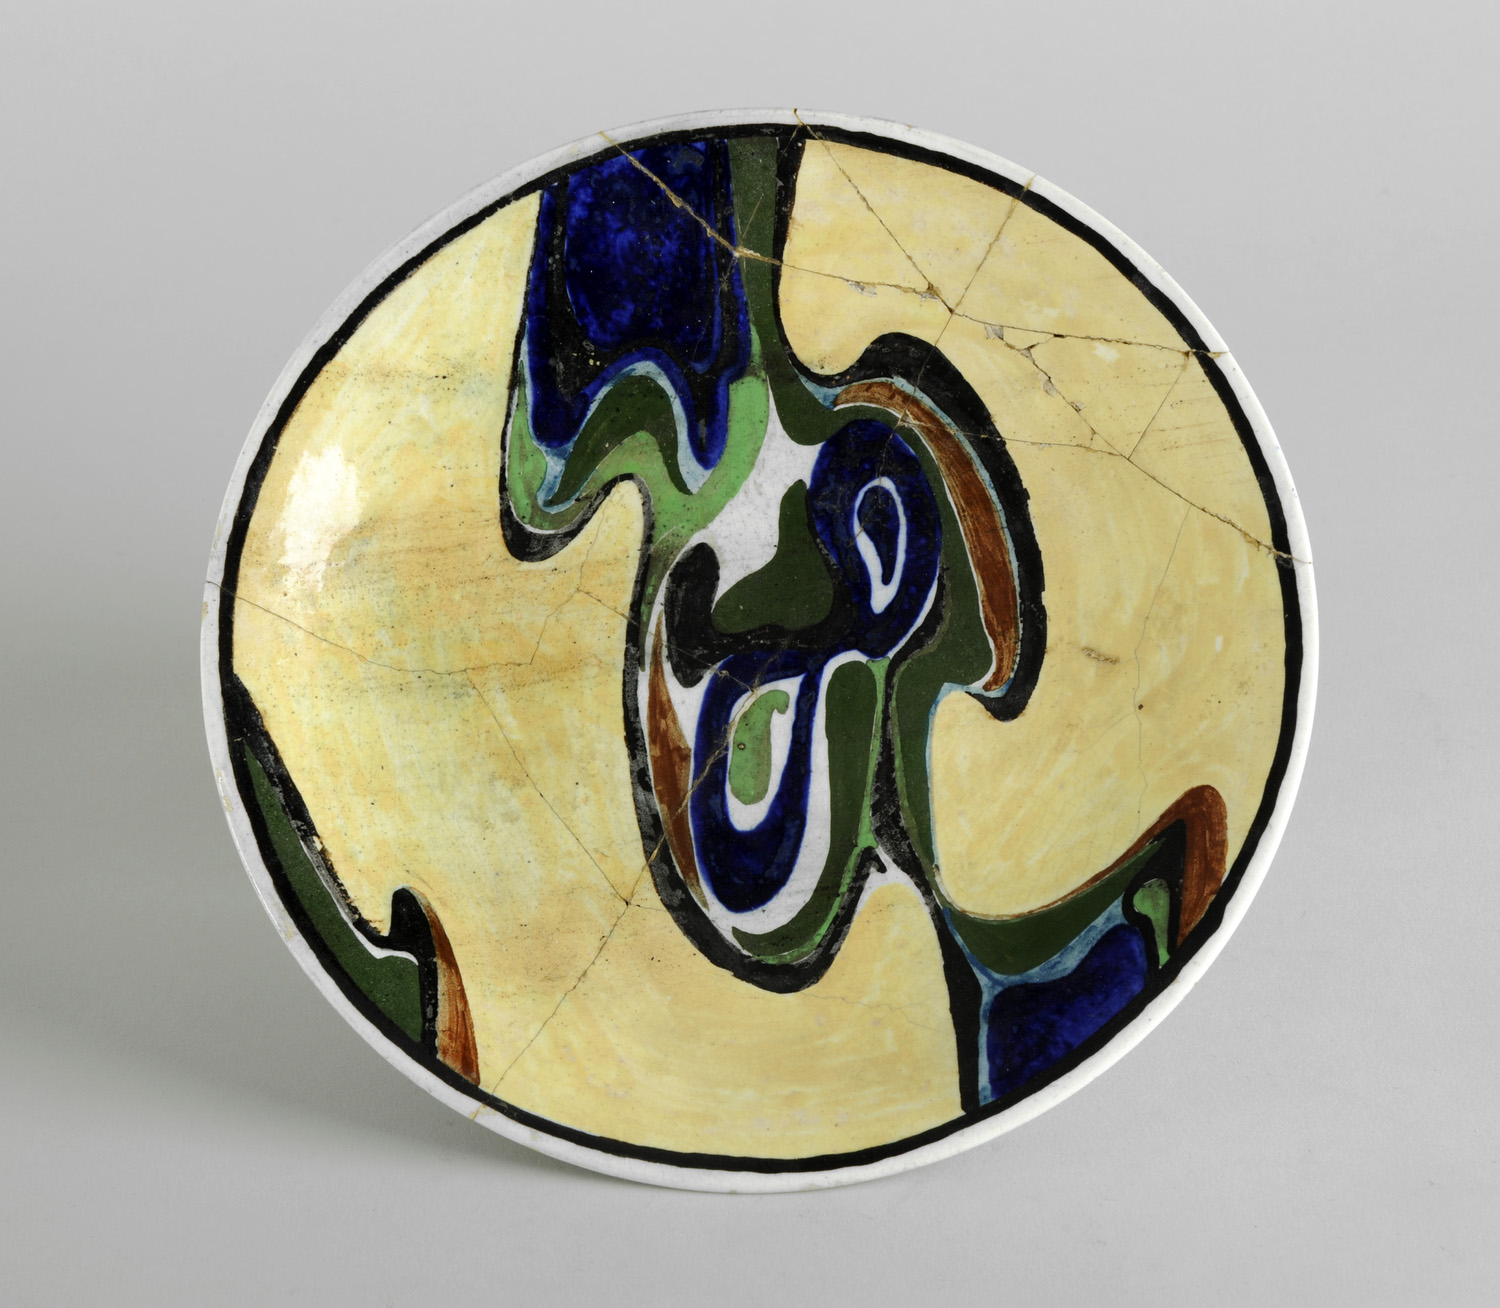 Henry Moore Decorated Plate c.1919-21 (LH X11)